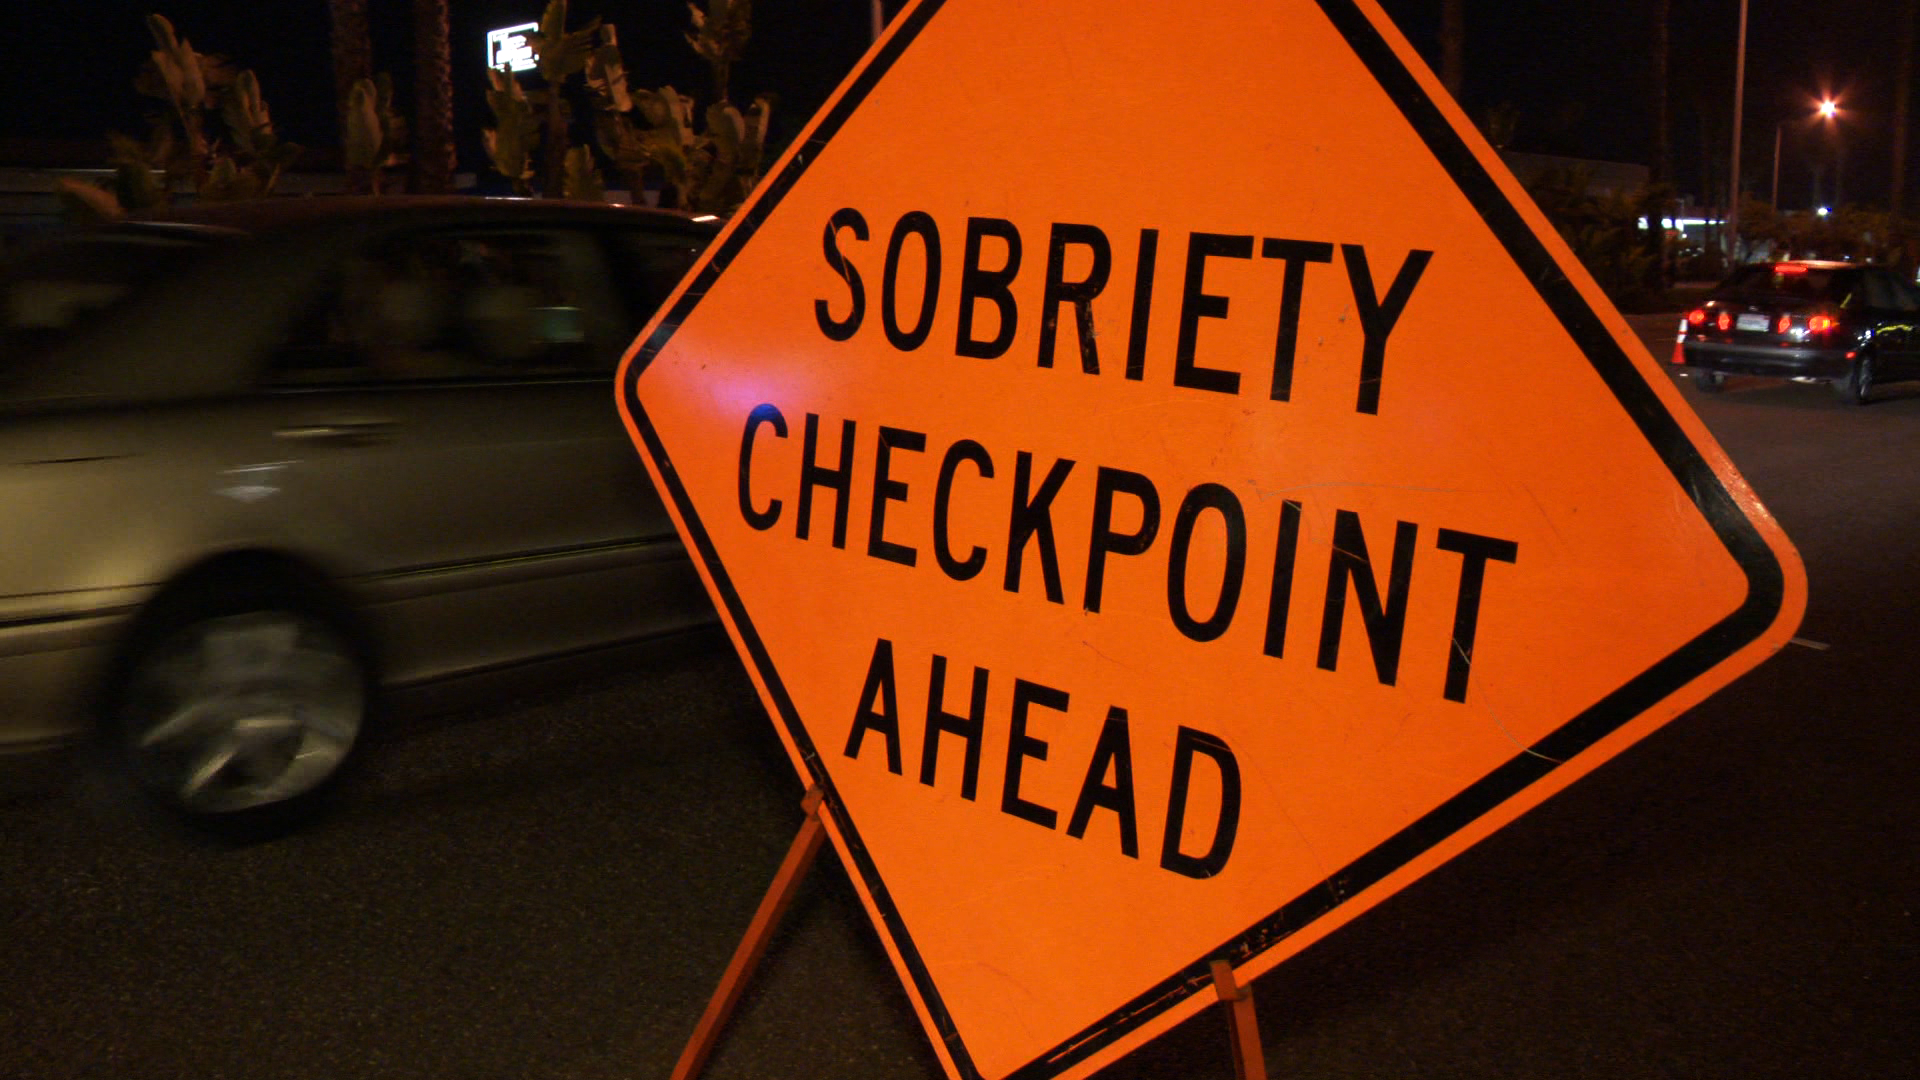 Oregon, sobriety, attorney, dui, legal, lawyer, sr22, non-owner, non-driver, without a car, checkpoint, rehab, Police, driver diversion program